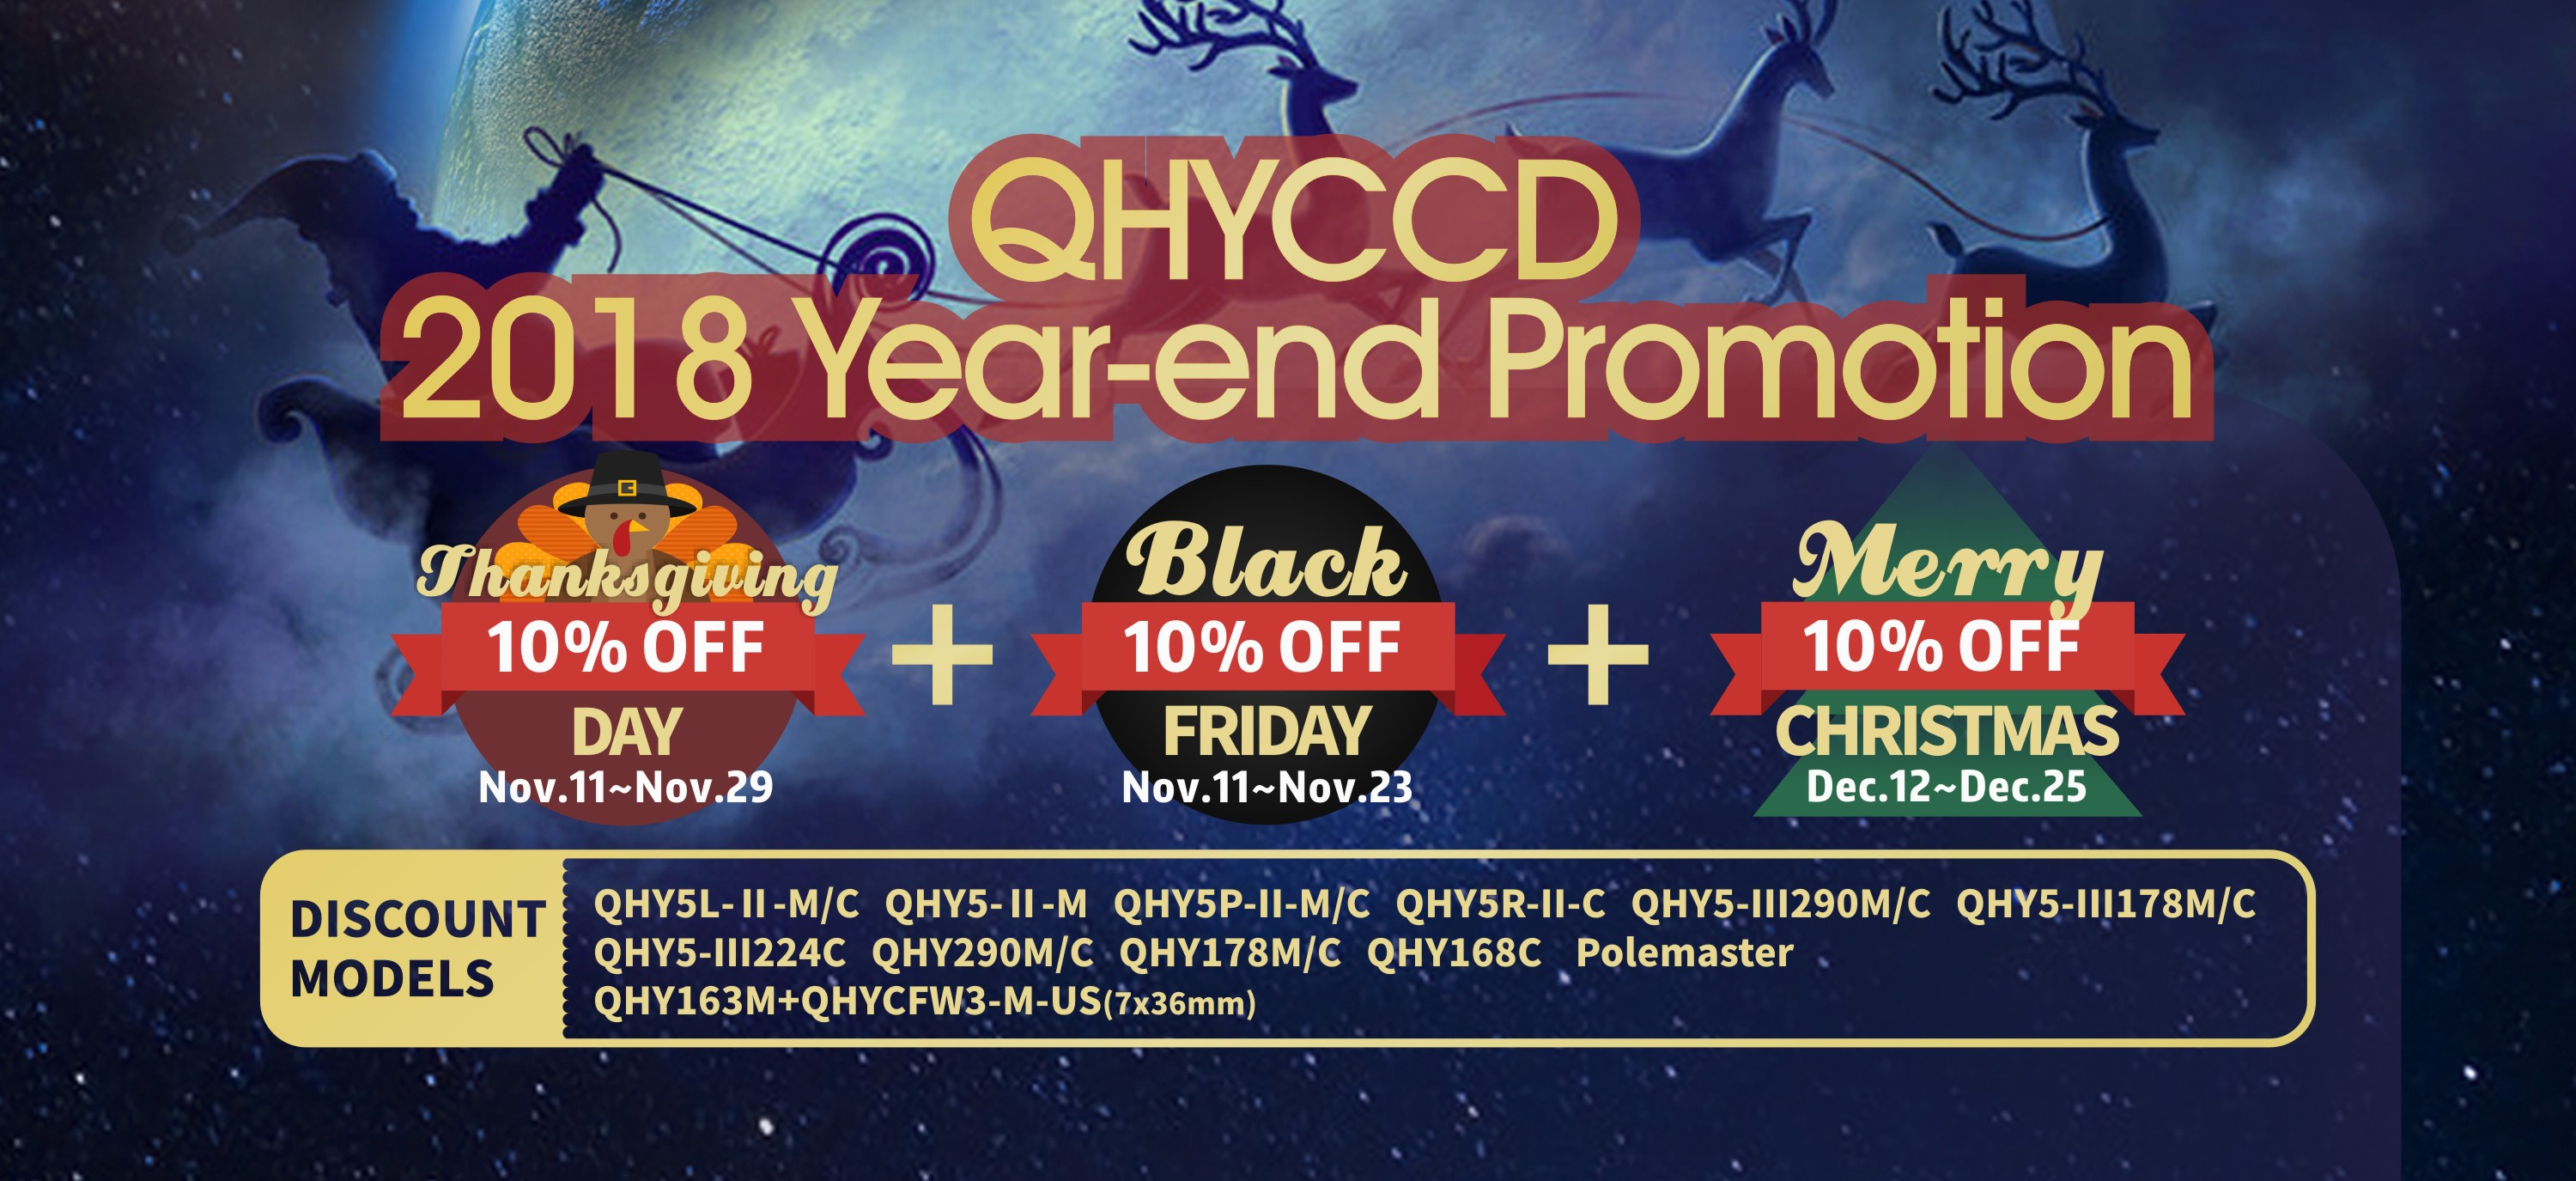 QHYCCD2018 Year-end Promotion